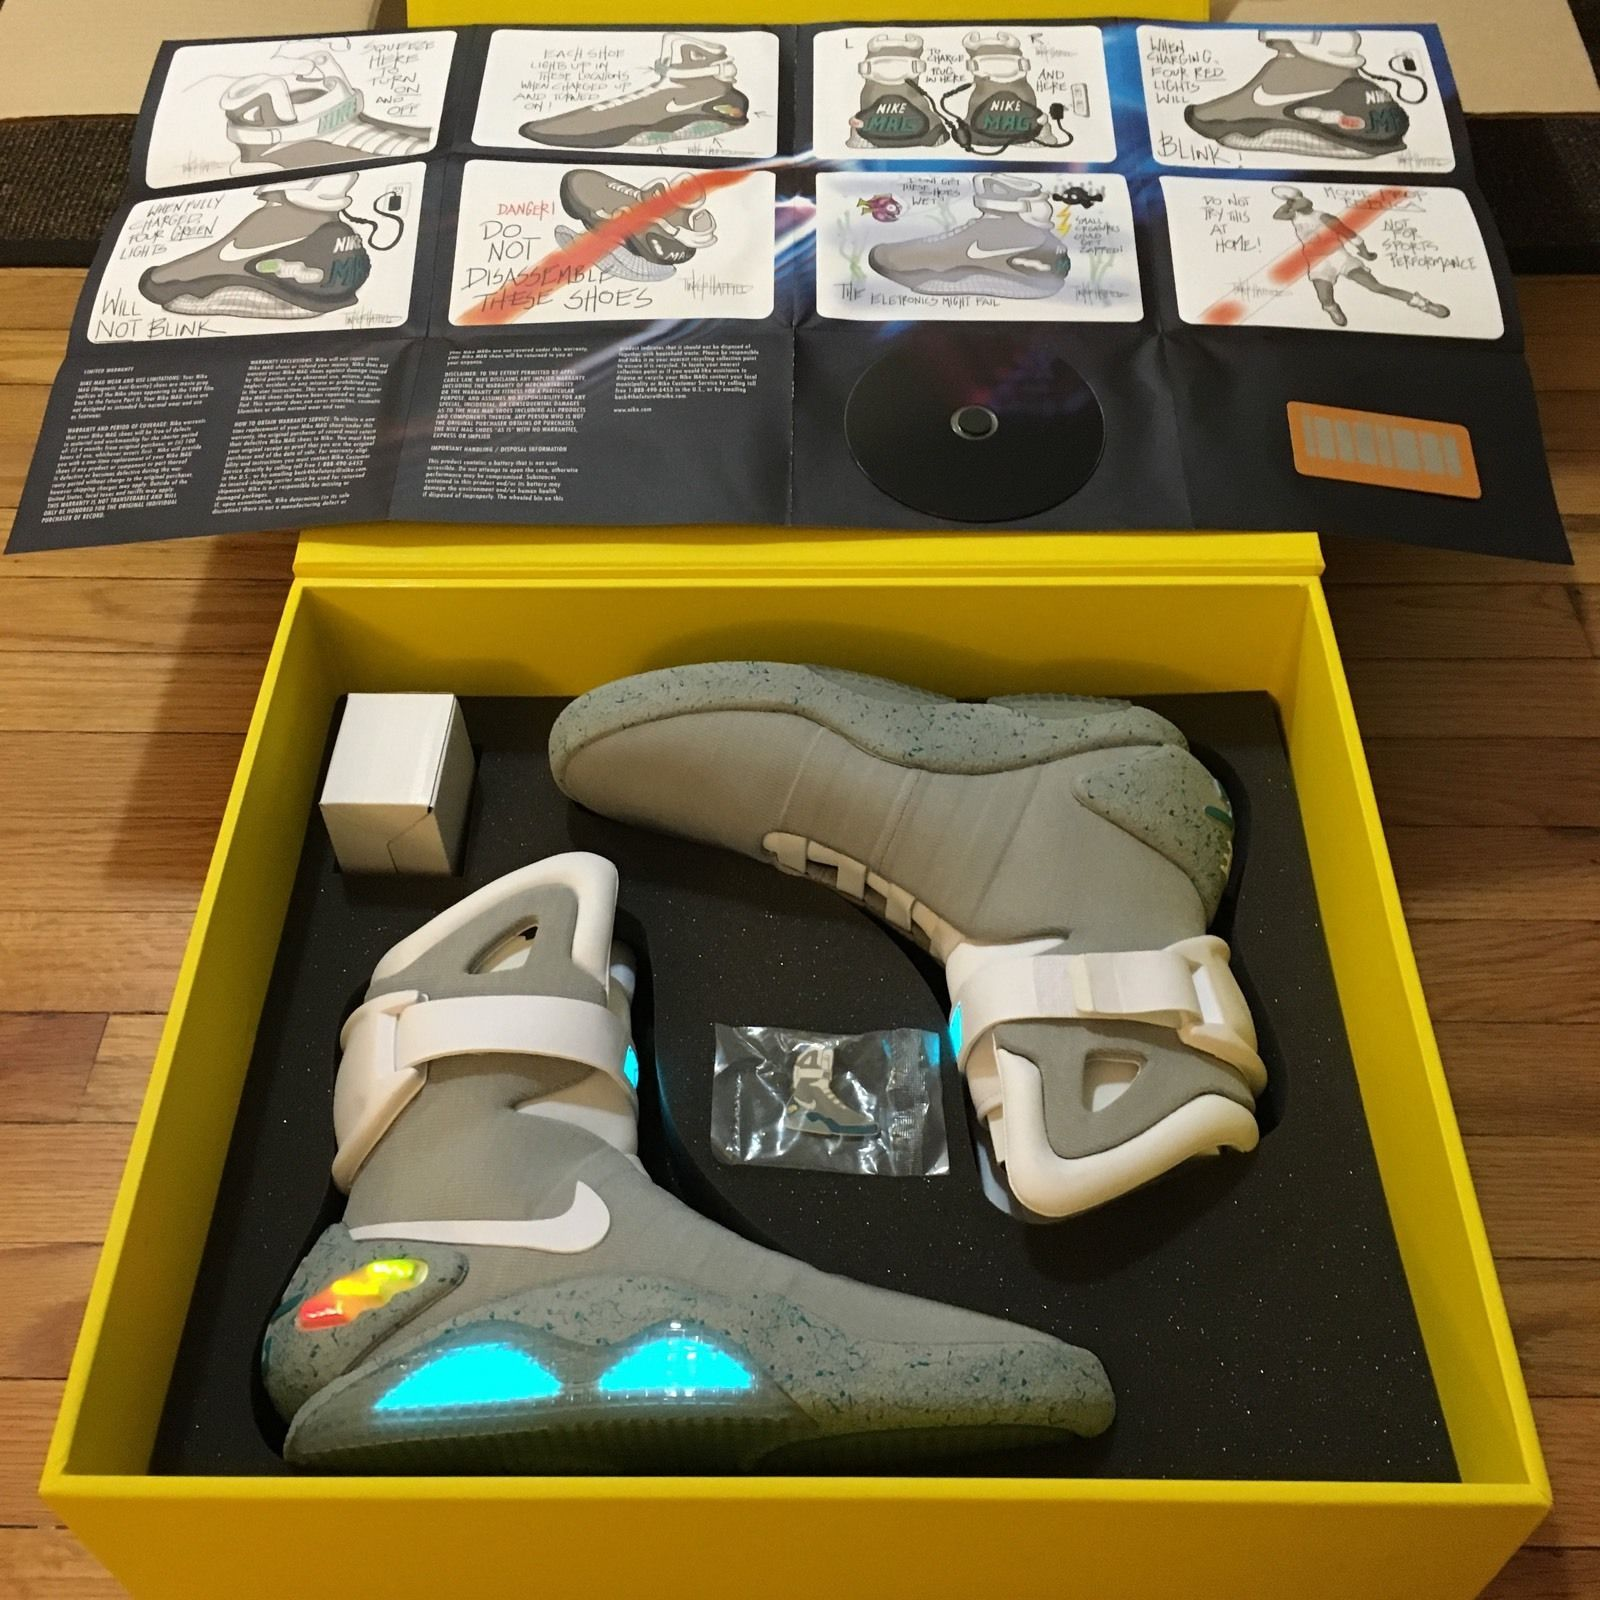 Air Mag Back To The Future Ebay 2011 Nike Air Mag Marty Mcfly Back To The Future Ii Bttf Sneakers Size 10 Ebay Nike Air Mag Nike Shoes Nike Mag